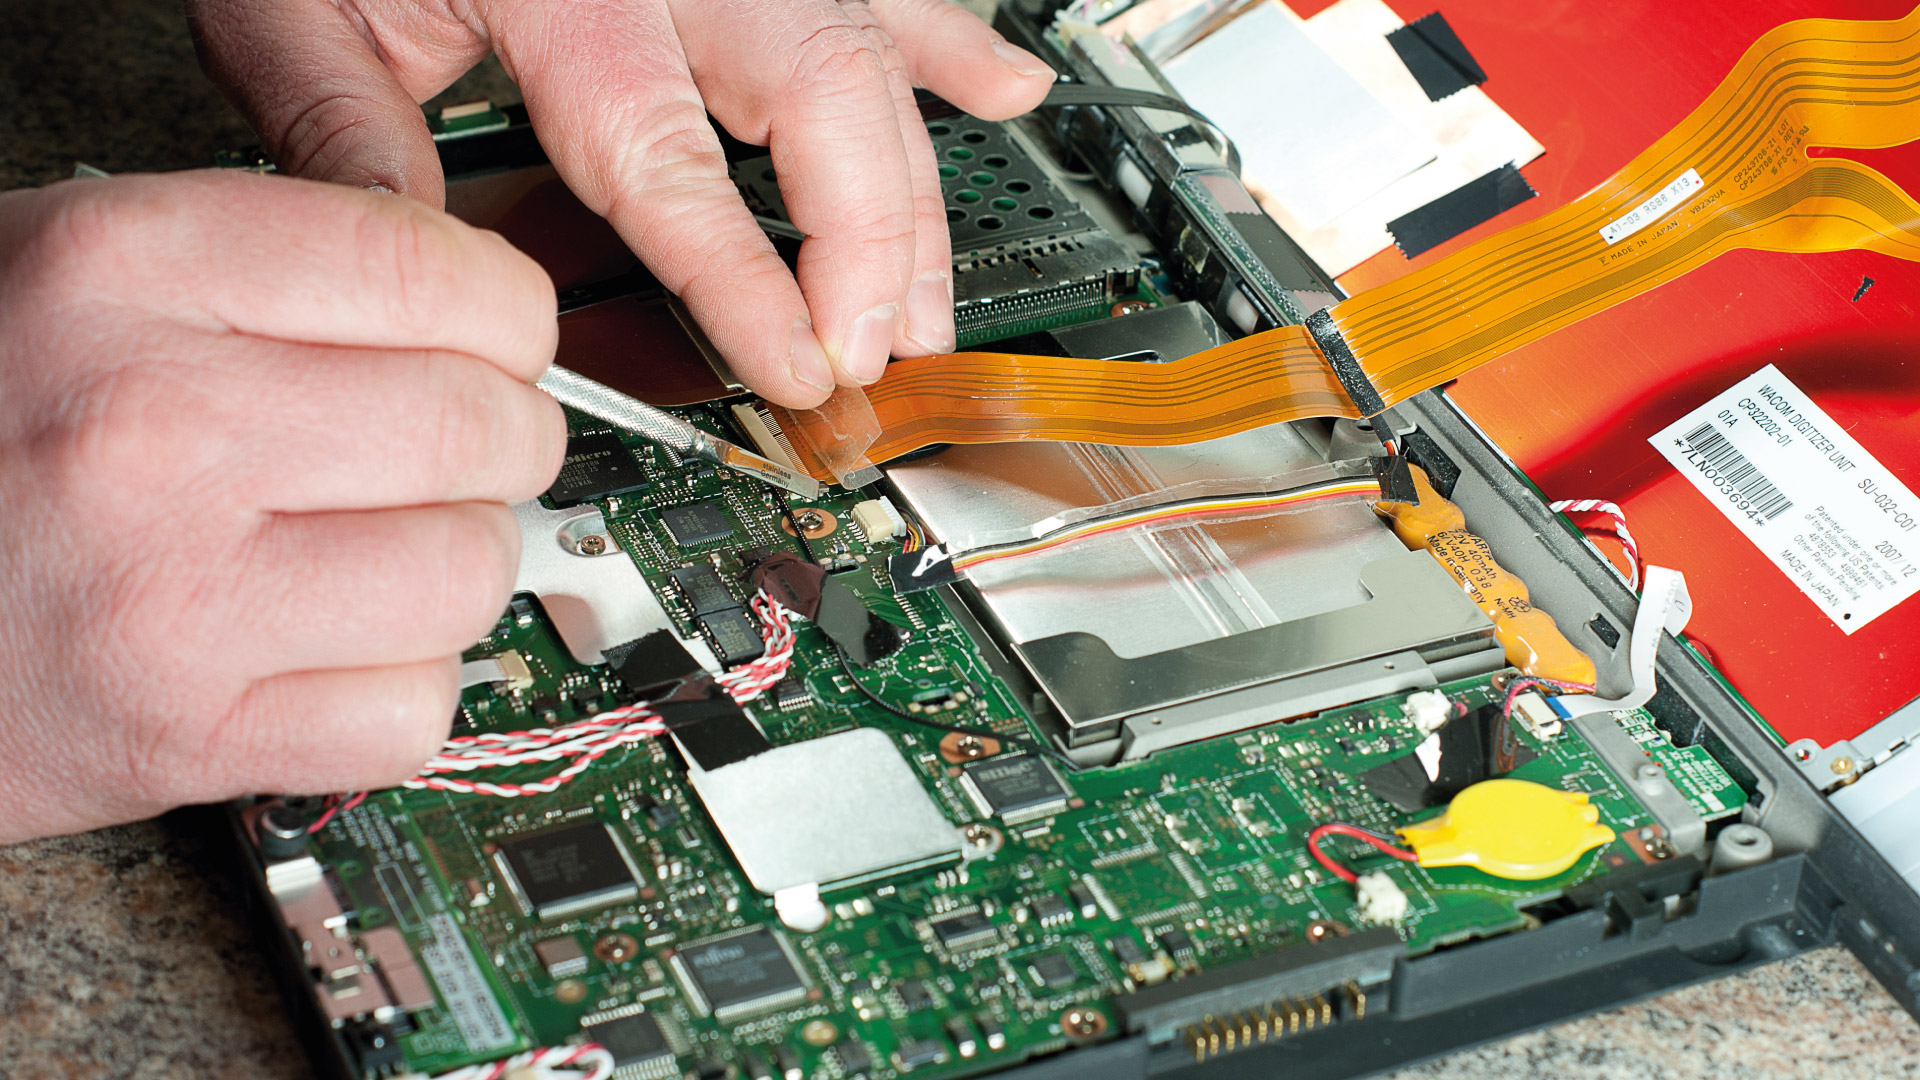 troubleshooting computer hardware 11) understand basic techniques of asking customers about their computer problems, and how to handle customer questions concerning their computer 12) developing a computer repair kit that contains the right software, hardware, tools and spare parts.